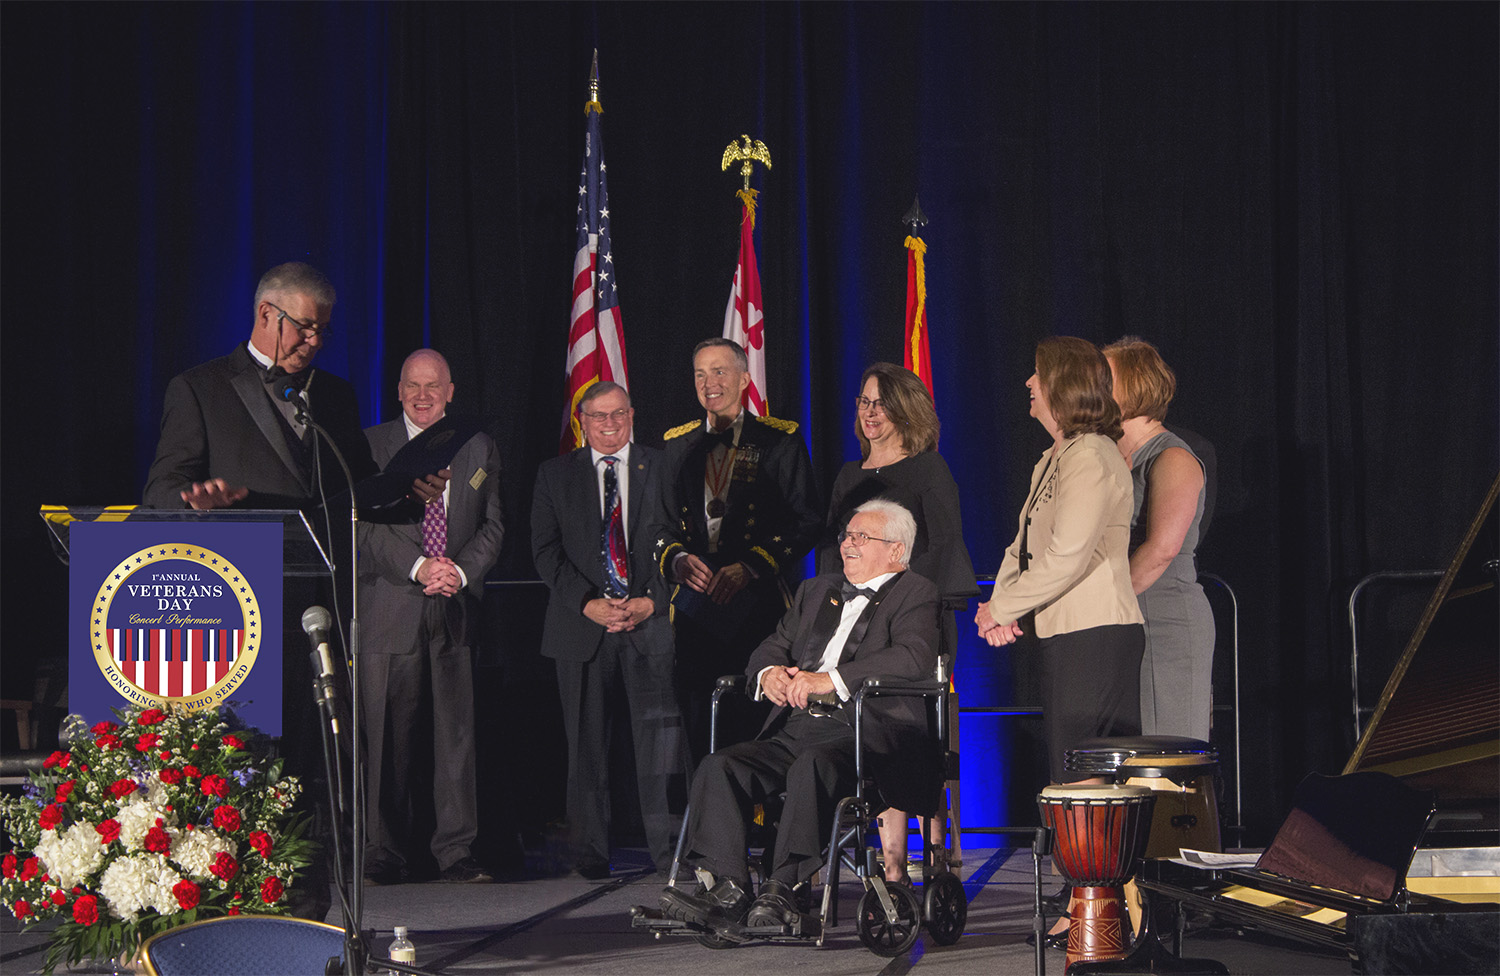 second WWII veteran receiving honor from BISM president Fred Puente, honor is from Maryland Governor's Office